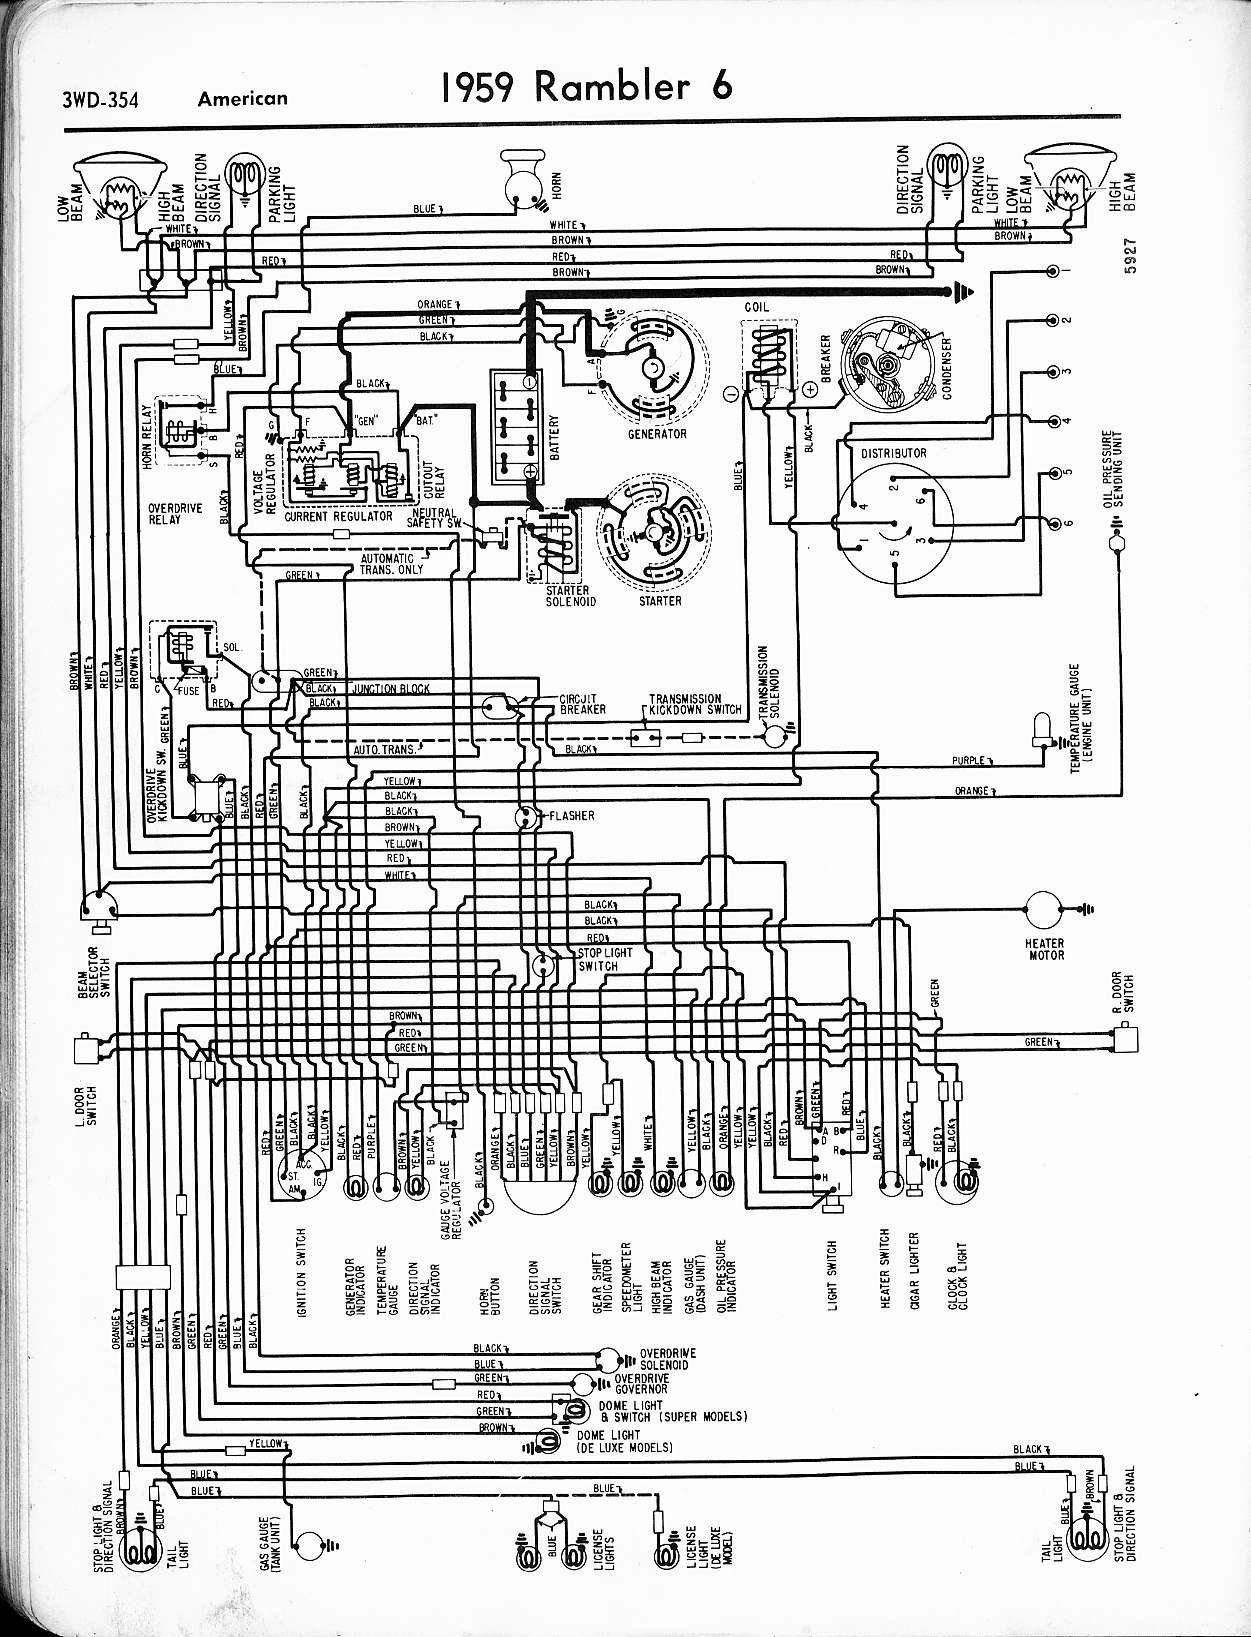 1969 Corvette Wiring Diagram Coil Reveolution Of 1989 Mercury Tracer Rambler Diagrams The Old Car Manual Project Rh Oldcarmanualproject Com Wiper Motor